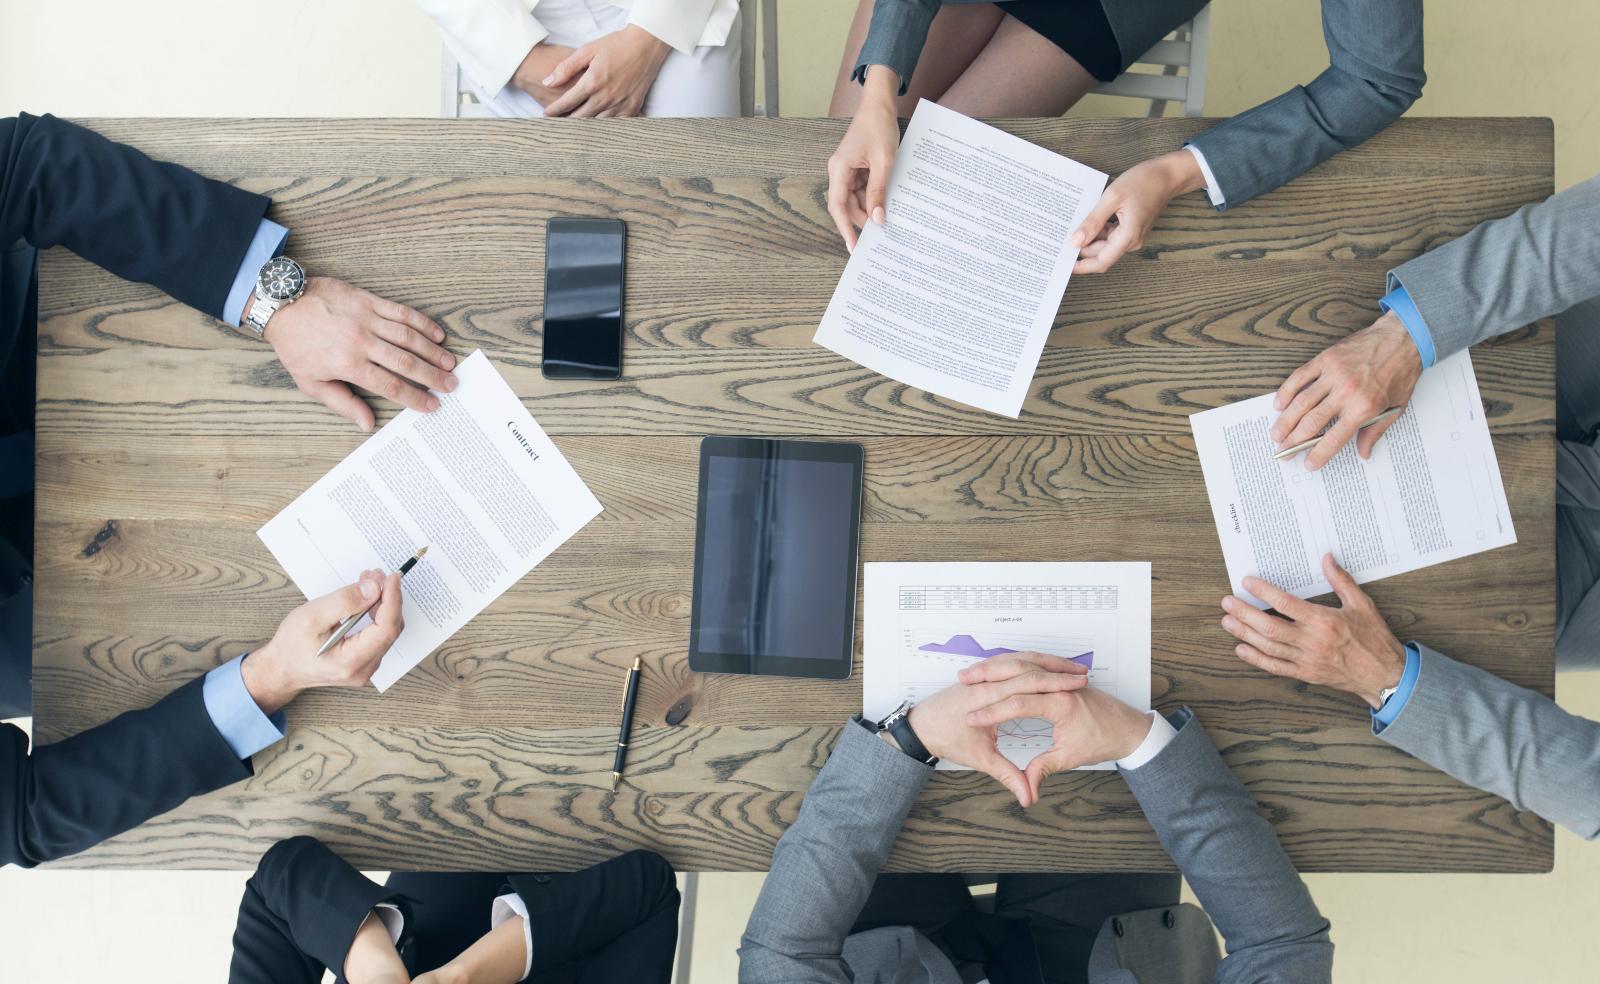 Group of people at a table reviewing a contract